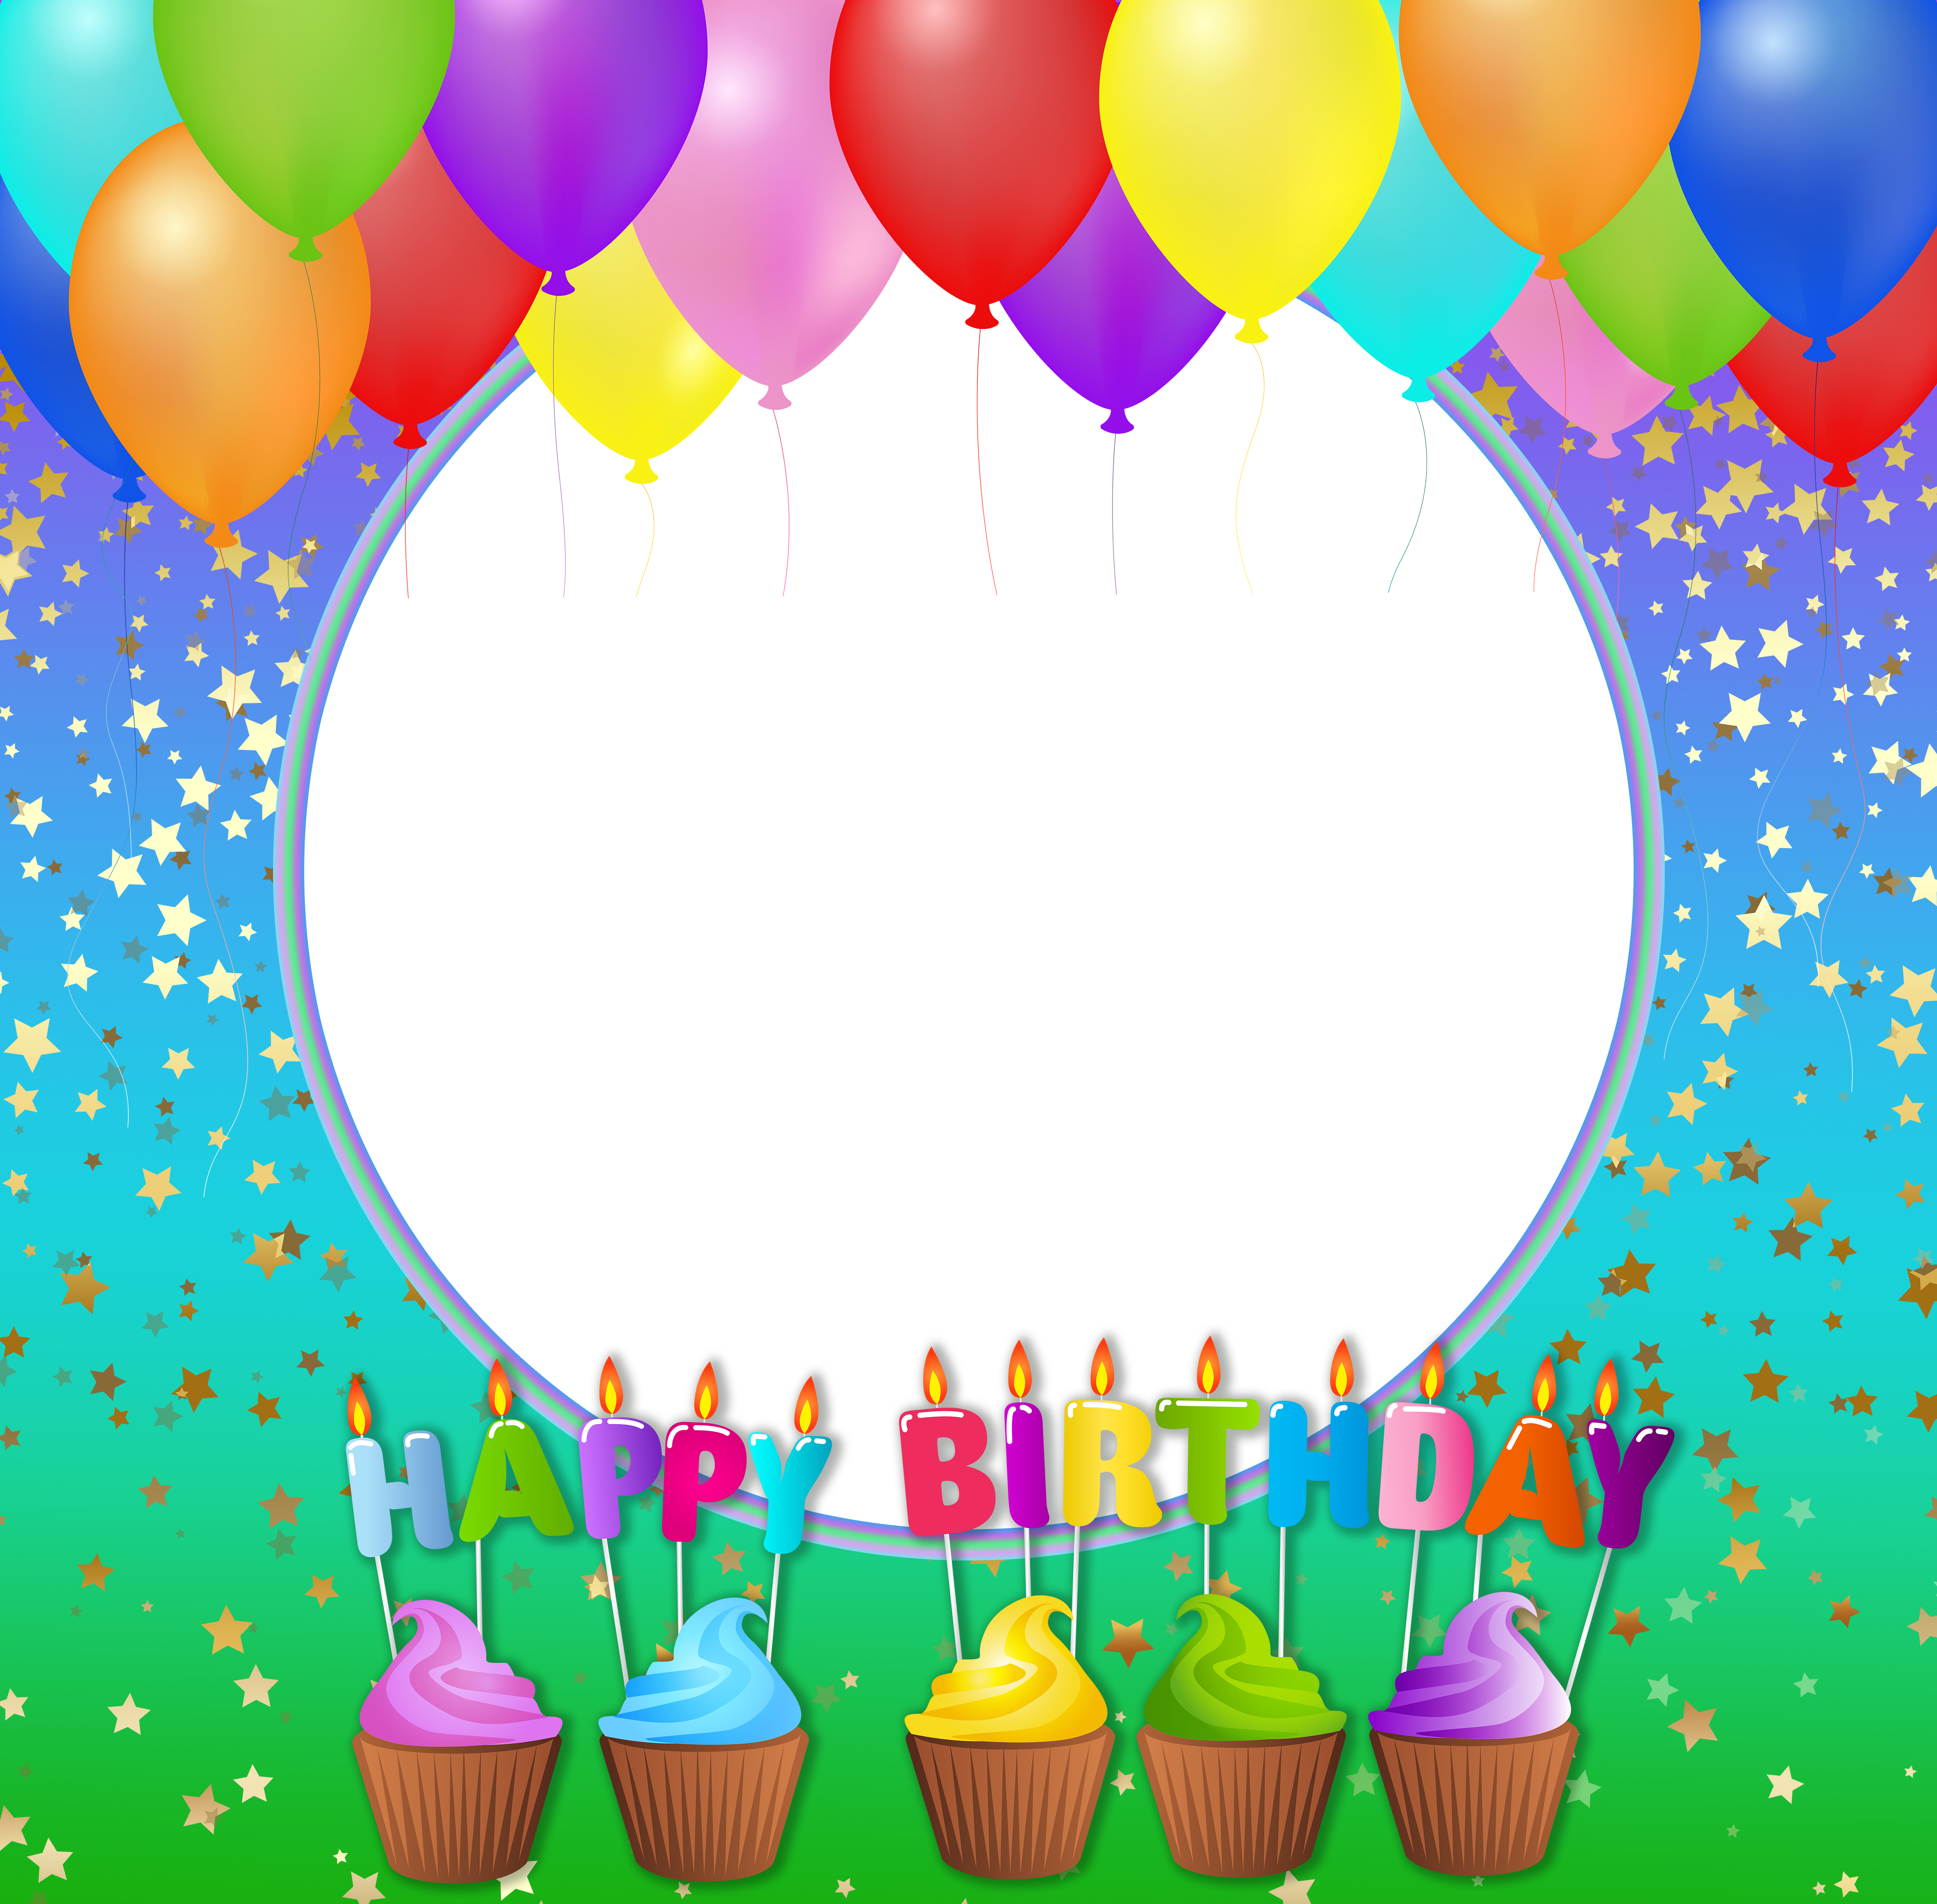 Happy birthday frame png.  collection of clipart